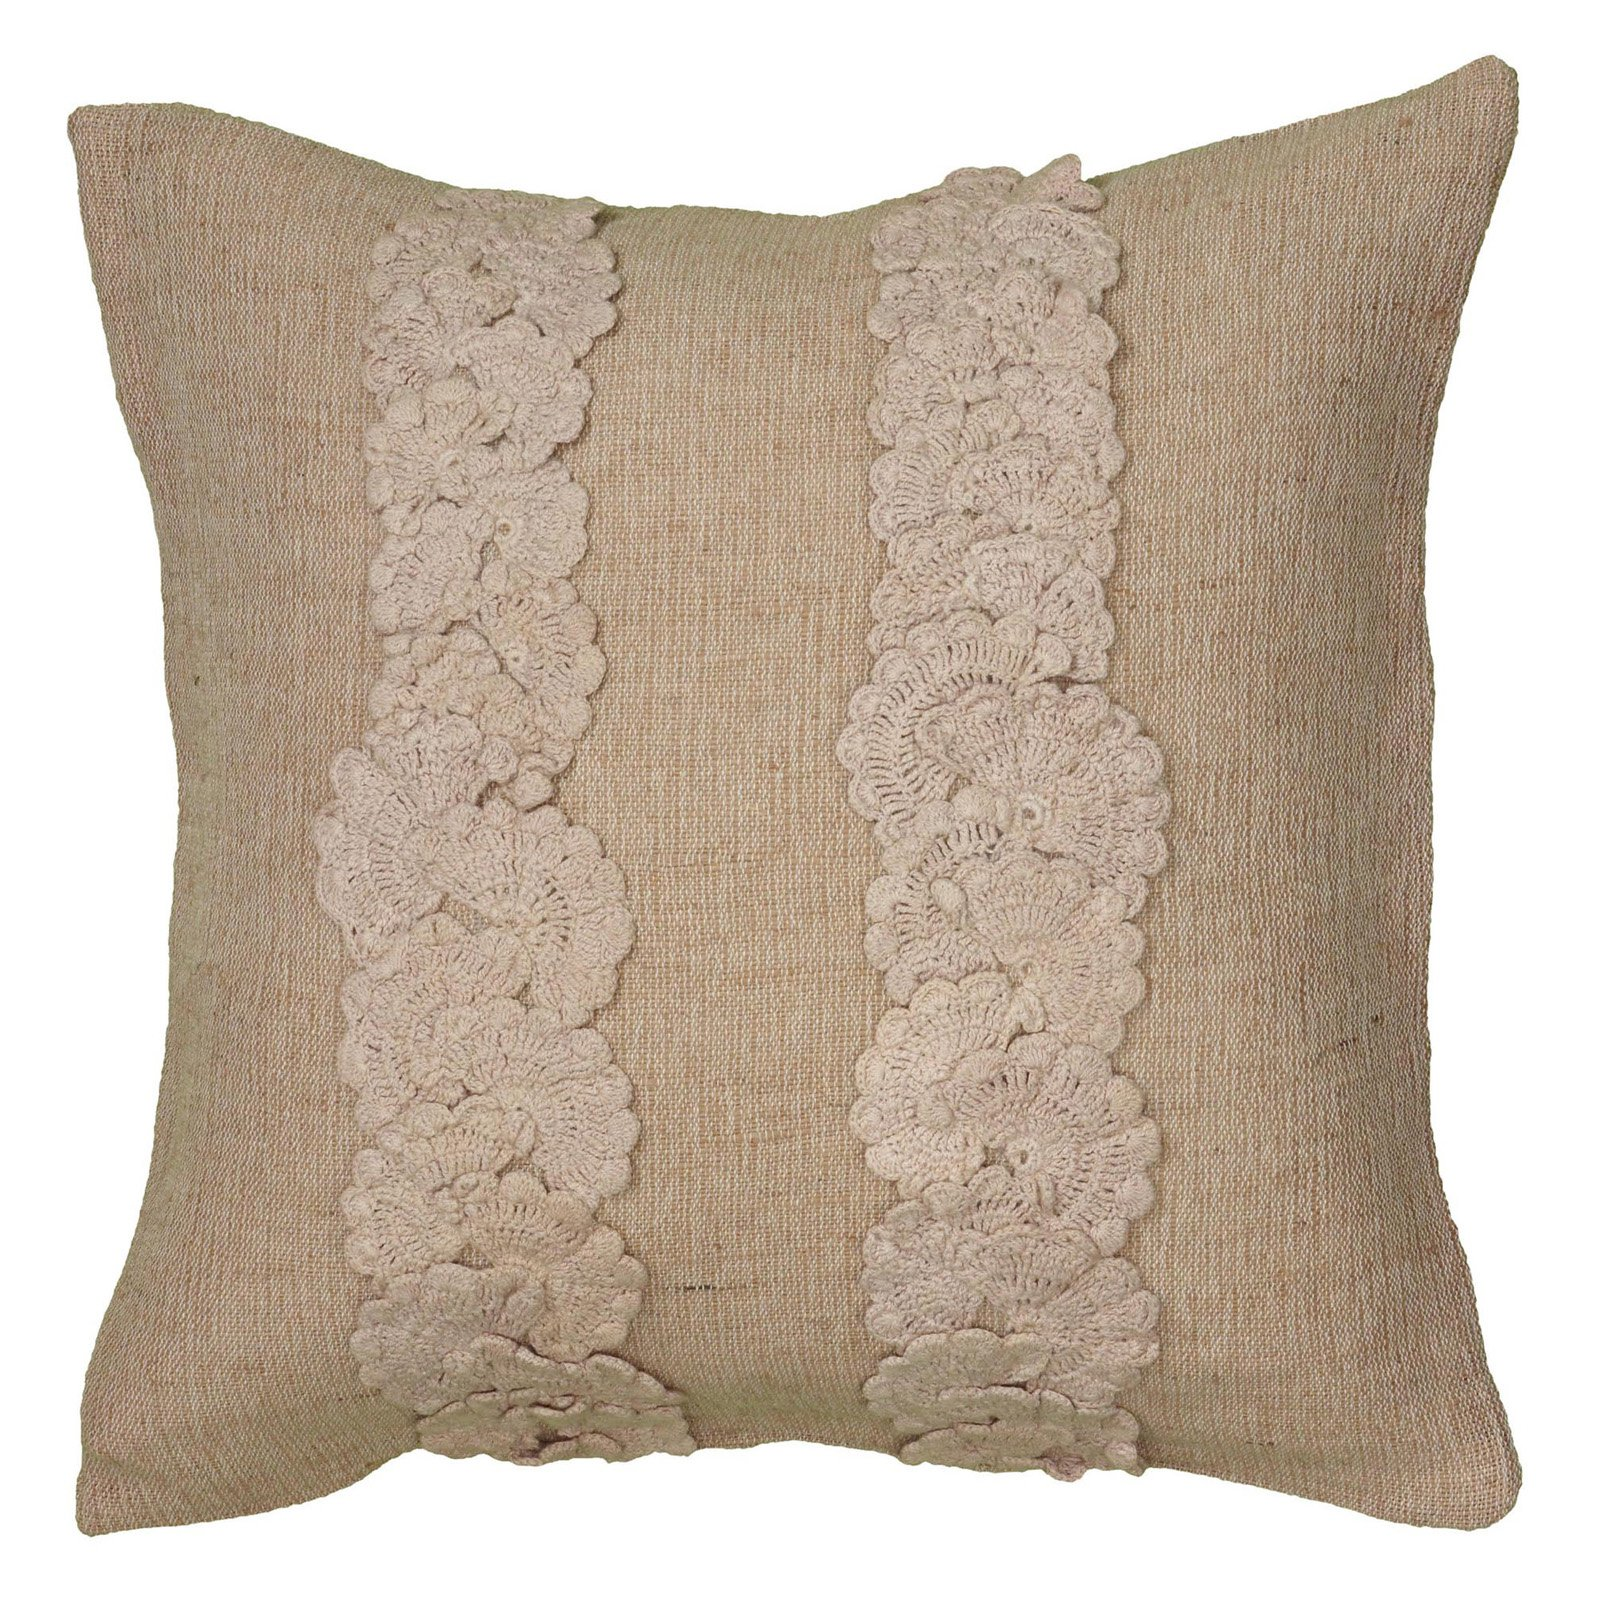 """Rizzy Home Decorative Poly Filled Throw Pillow Textured Stripes 18""""X18"""" Natural"""